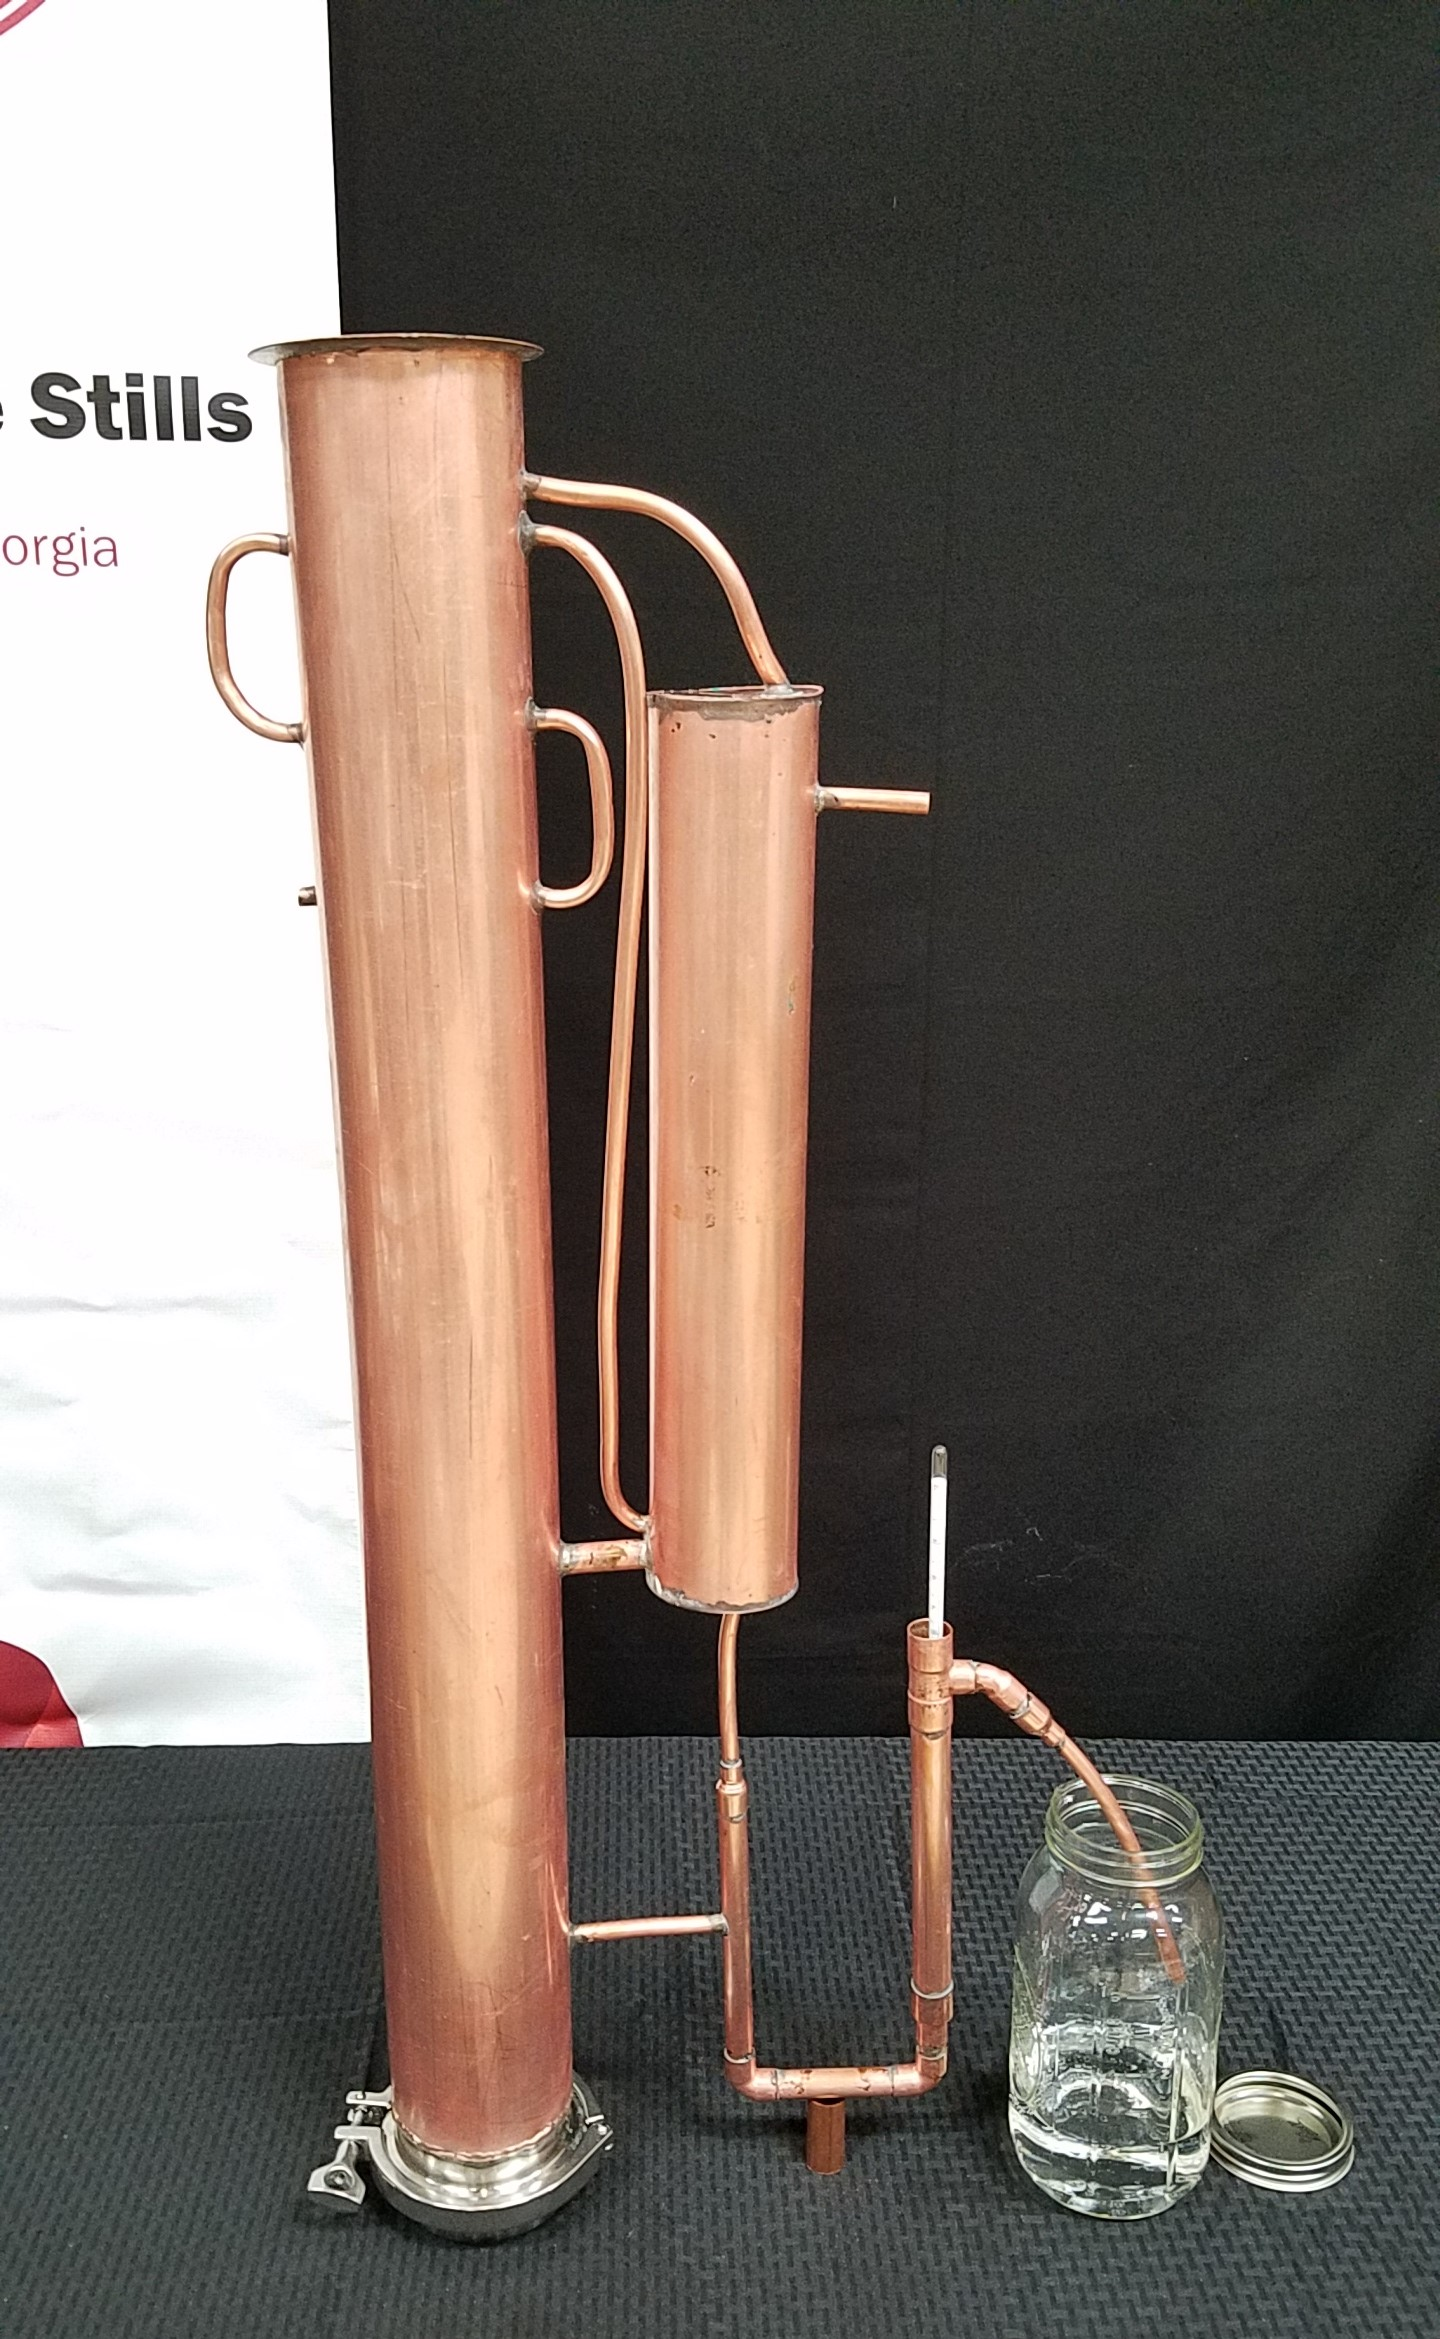 5 Reflux Column With Condenser And Built In Proofing